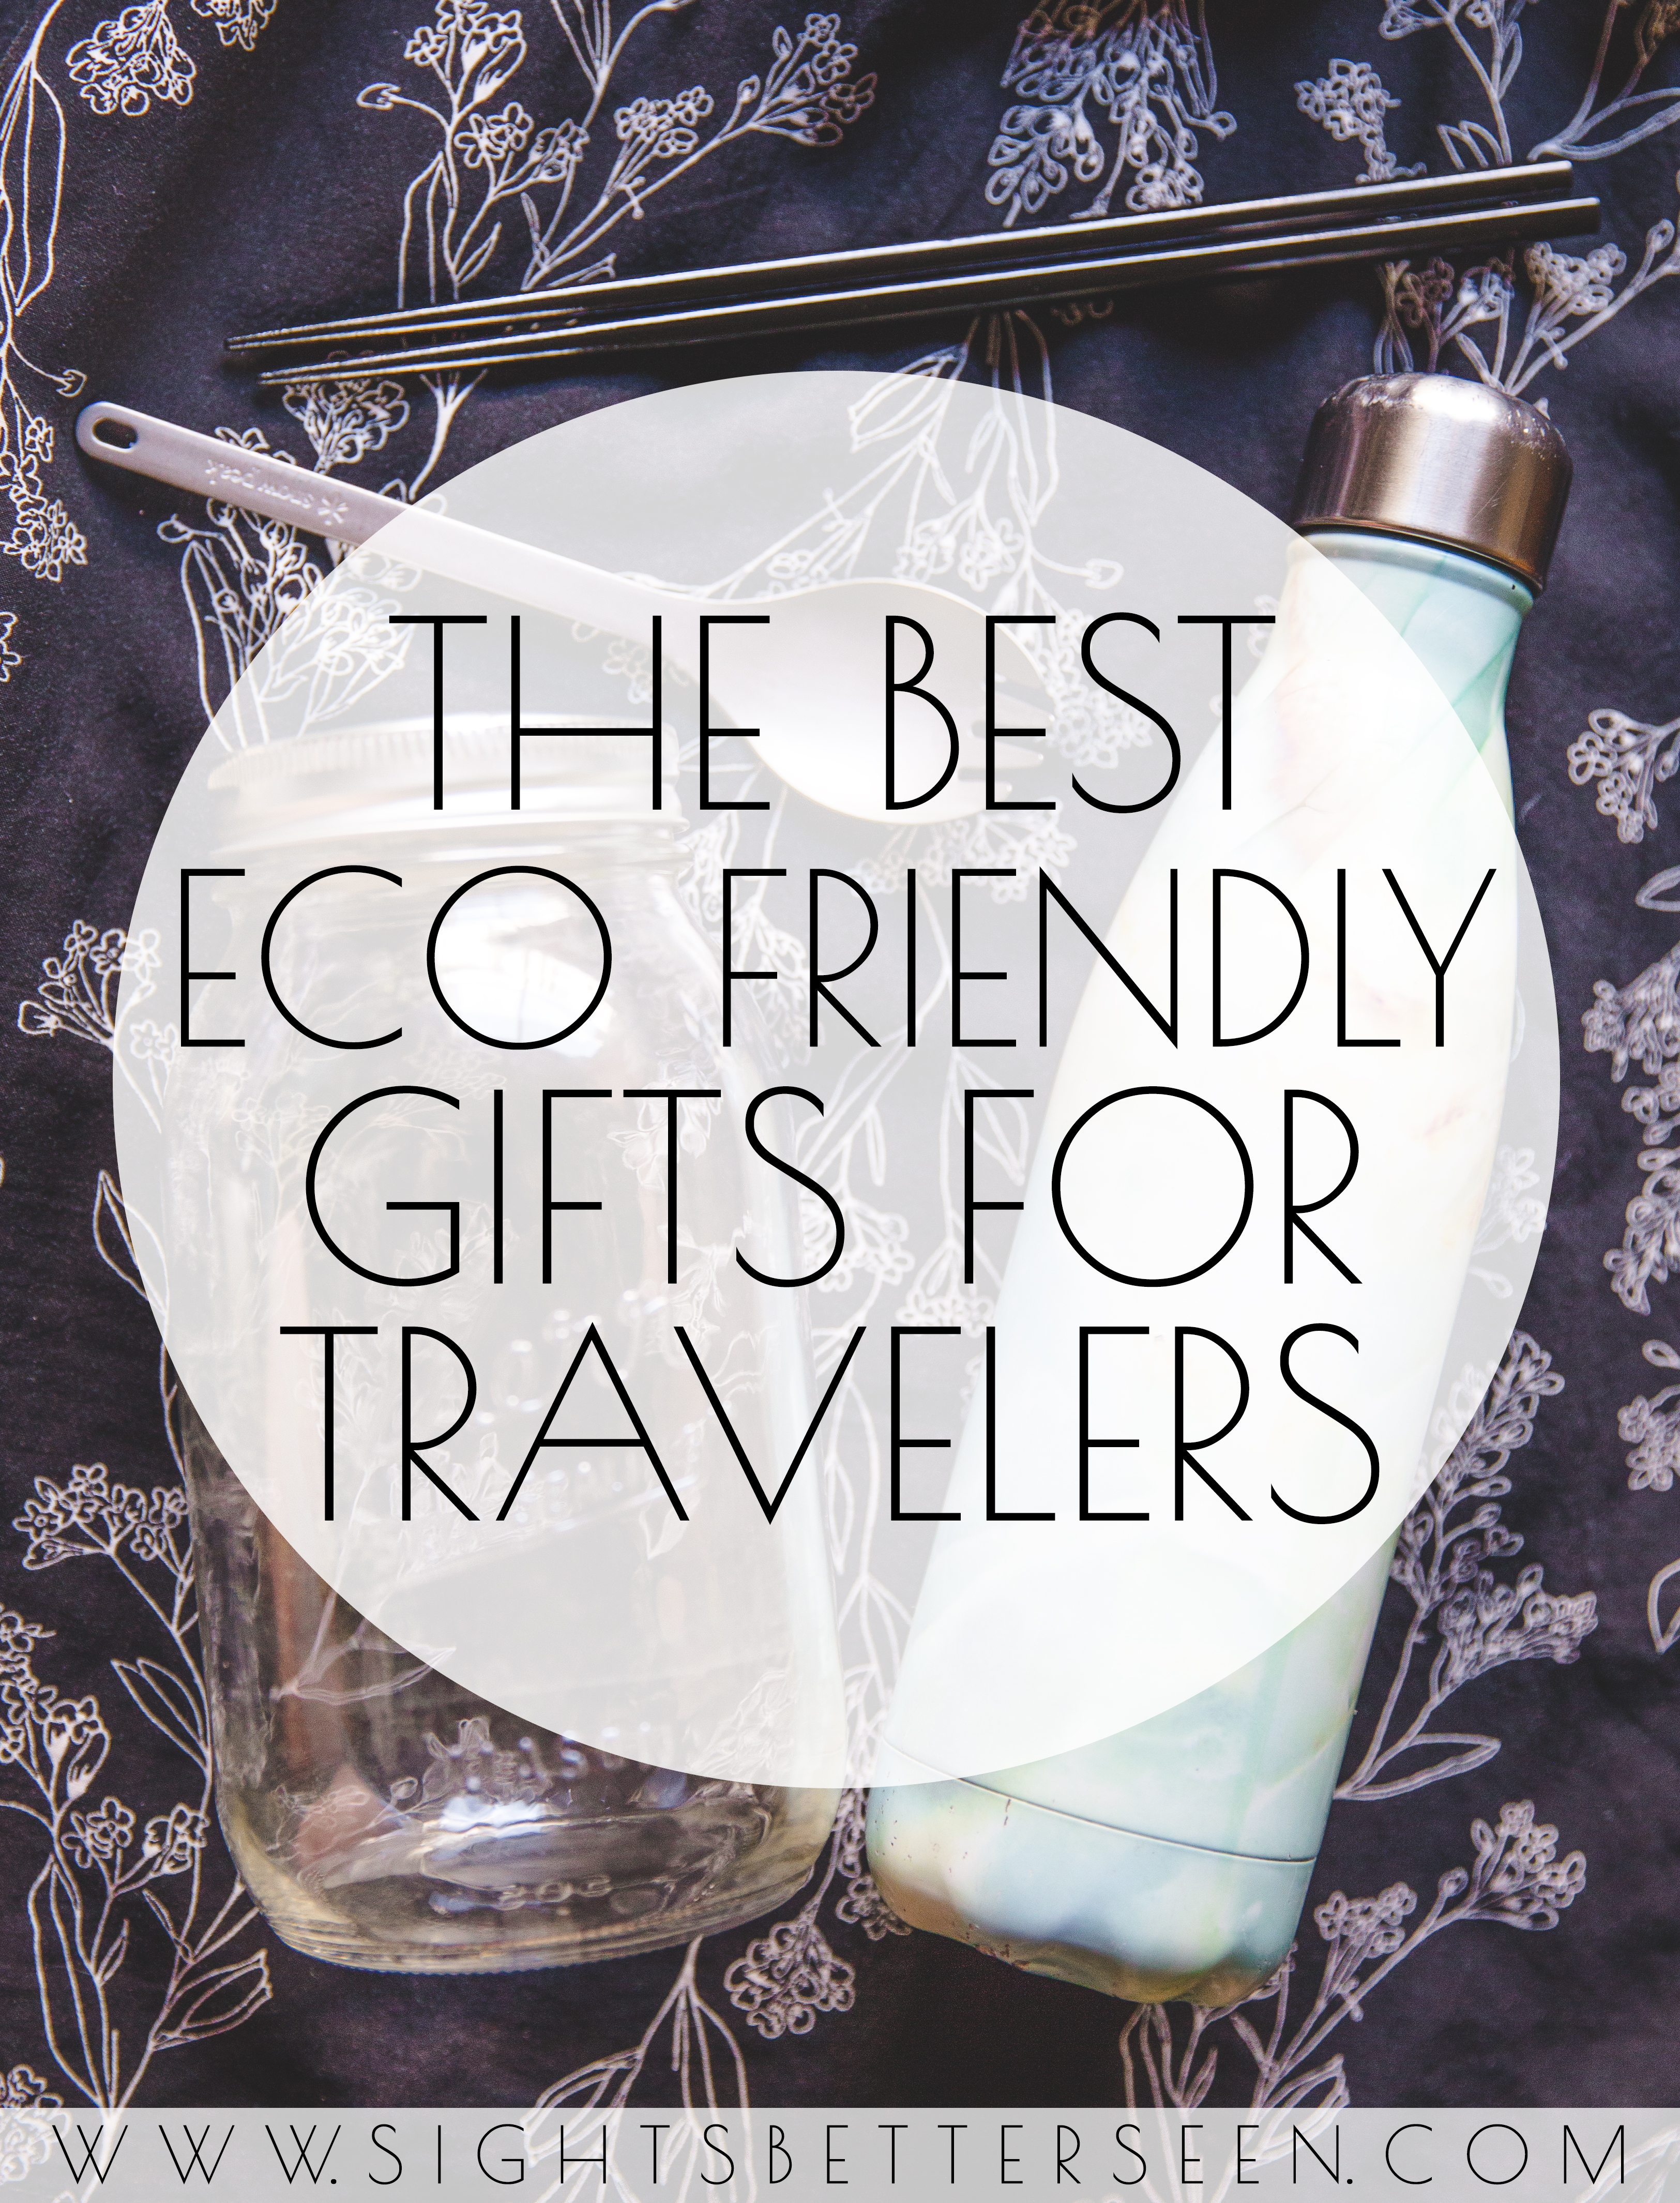 The Best Eco Friendly Gift Ideas for Travelers